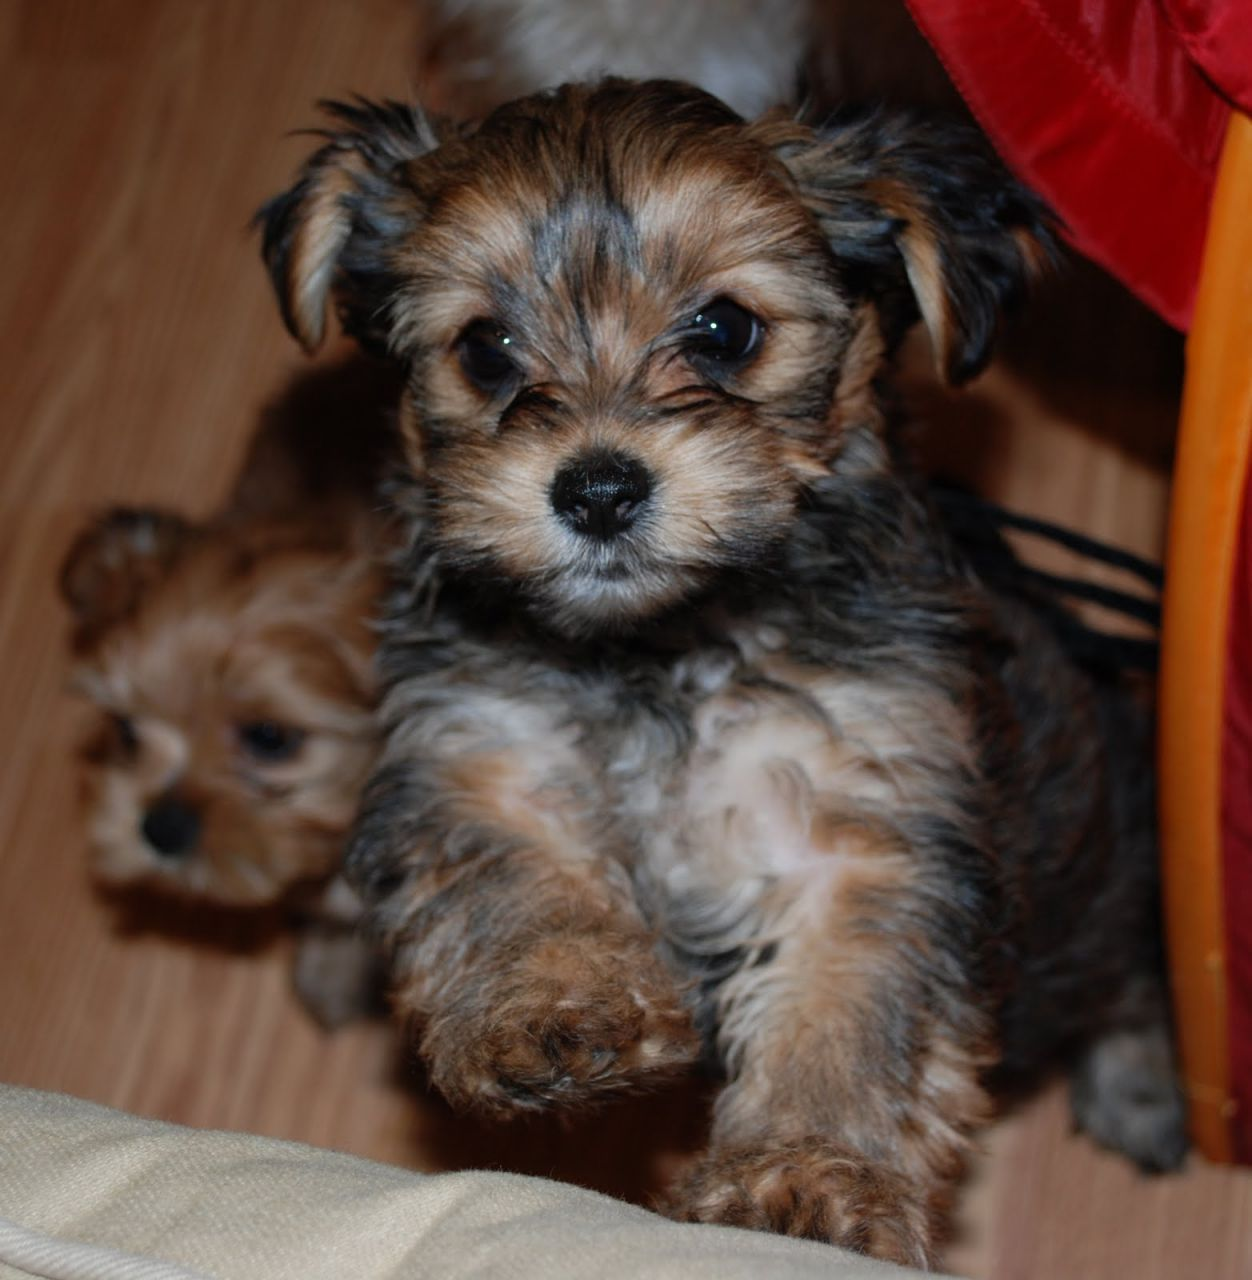 Shorkie Pups Shih Tzu X Yorkie Cute And Fluffy Warrington Cheshire Pets4homes Shorkie Puppies Puppies Cute Baby Animals